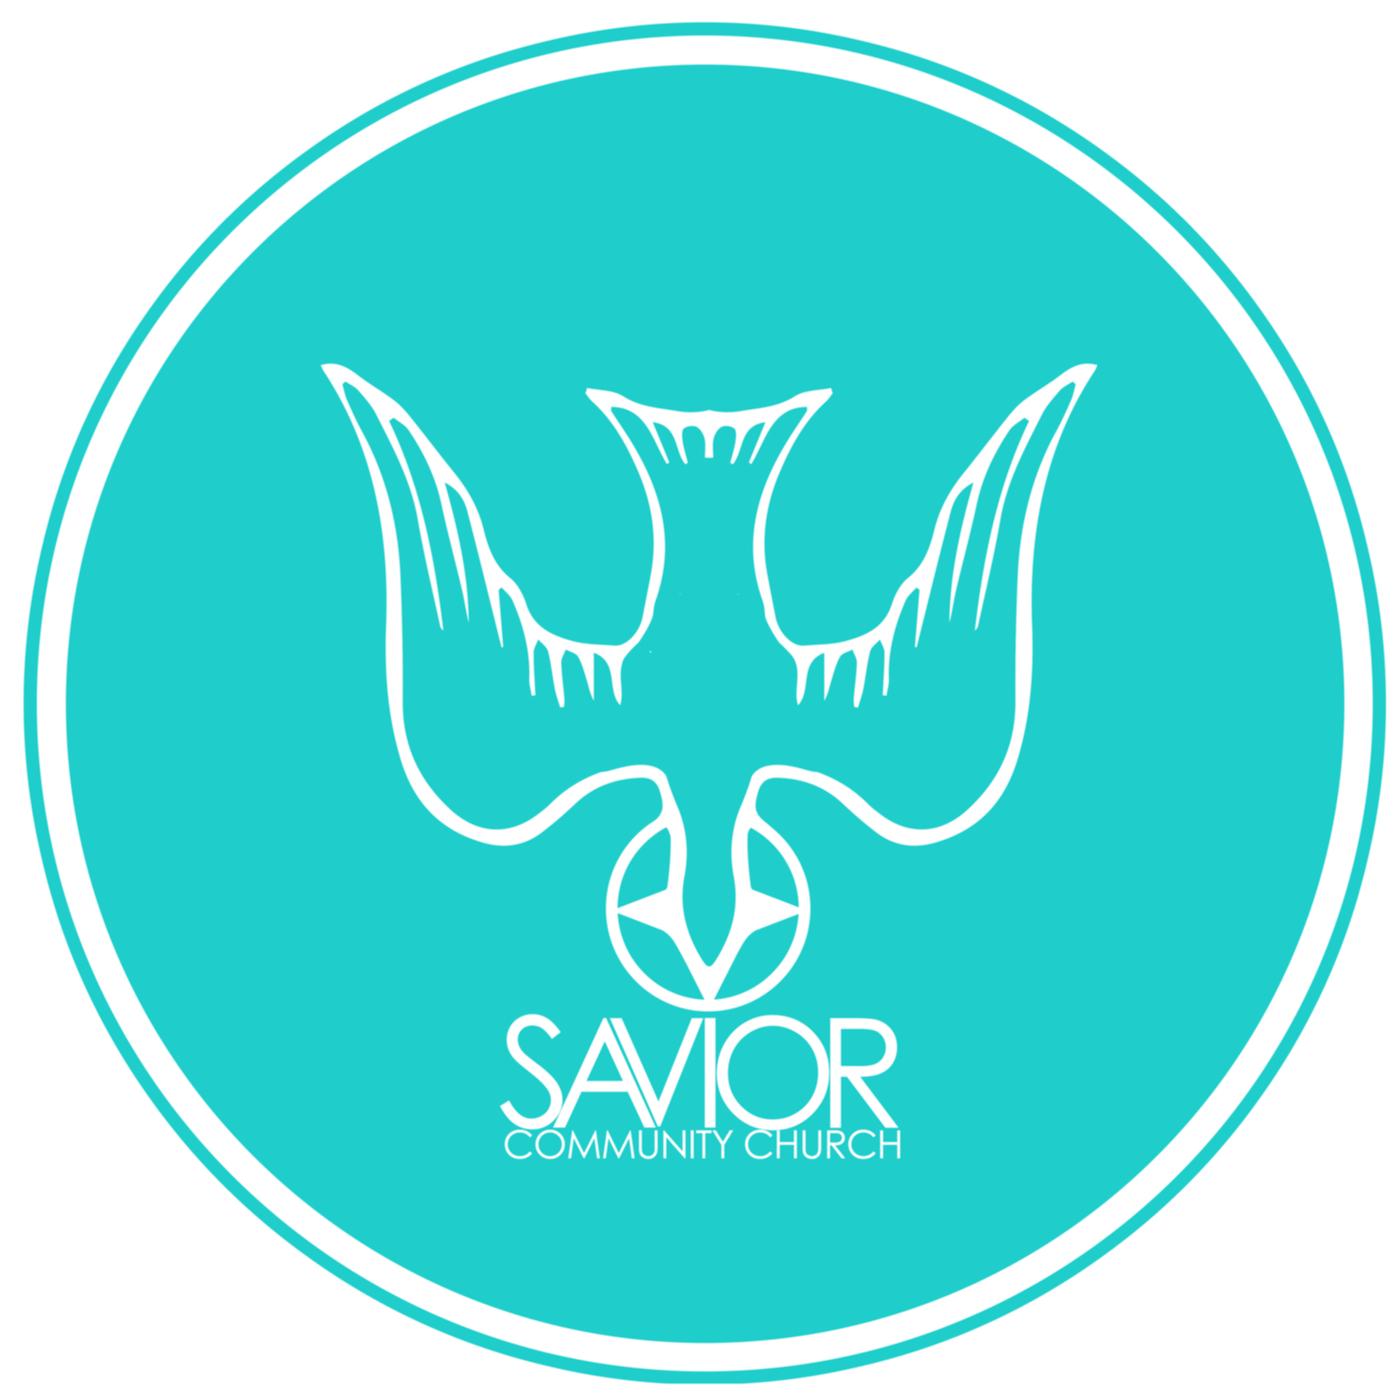 Savior Community Church, New City NY